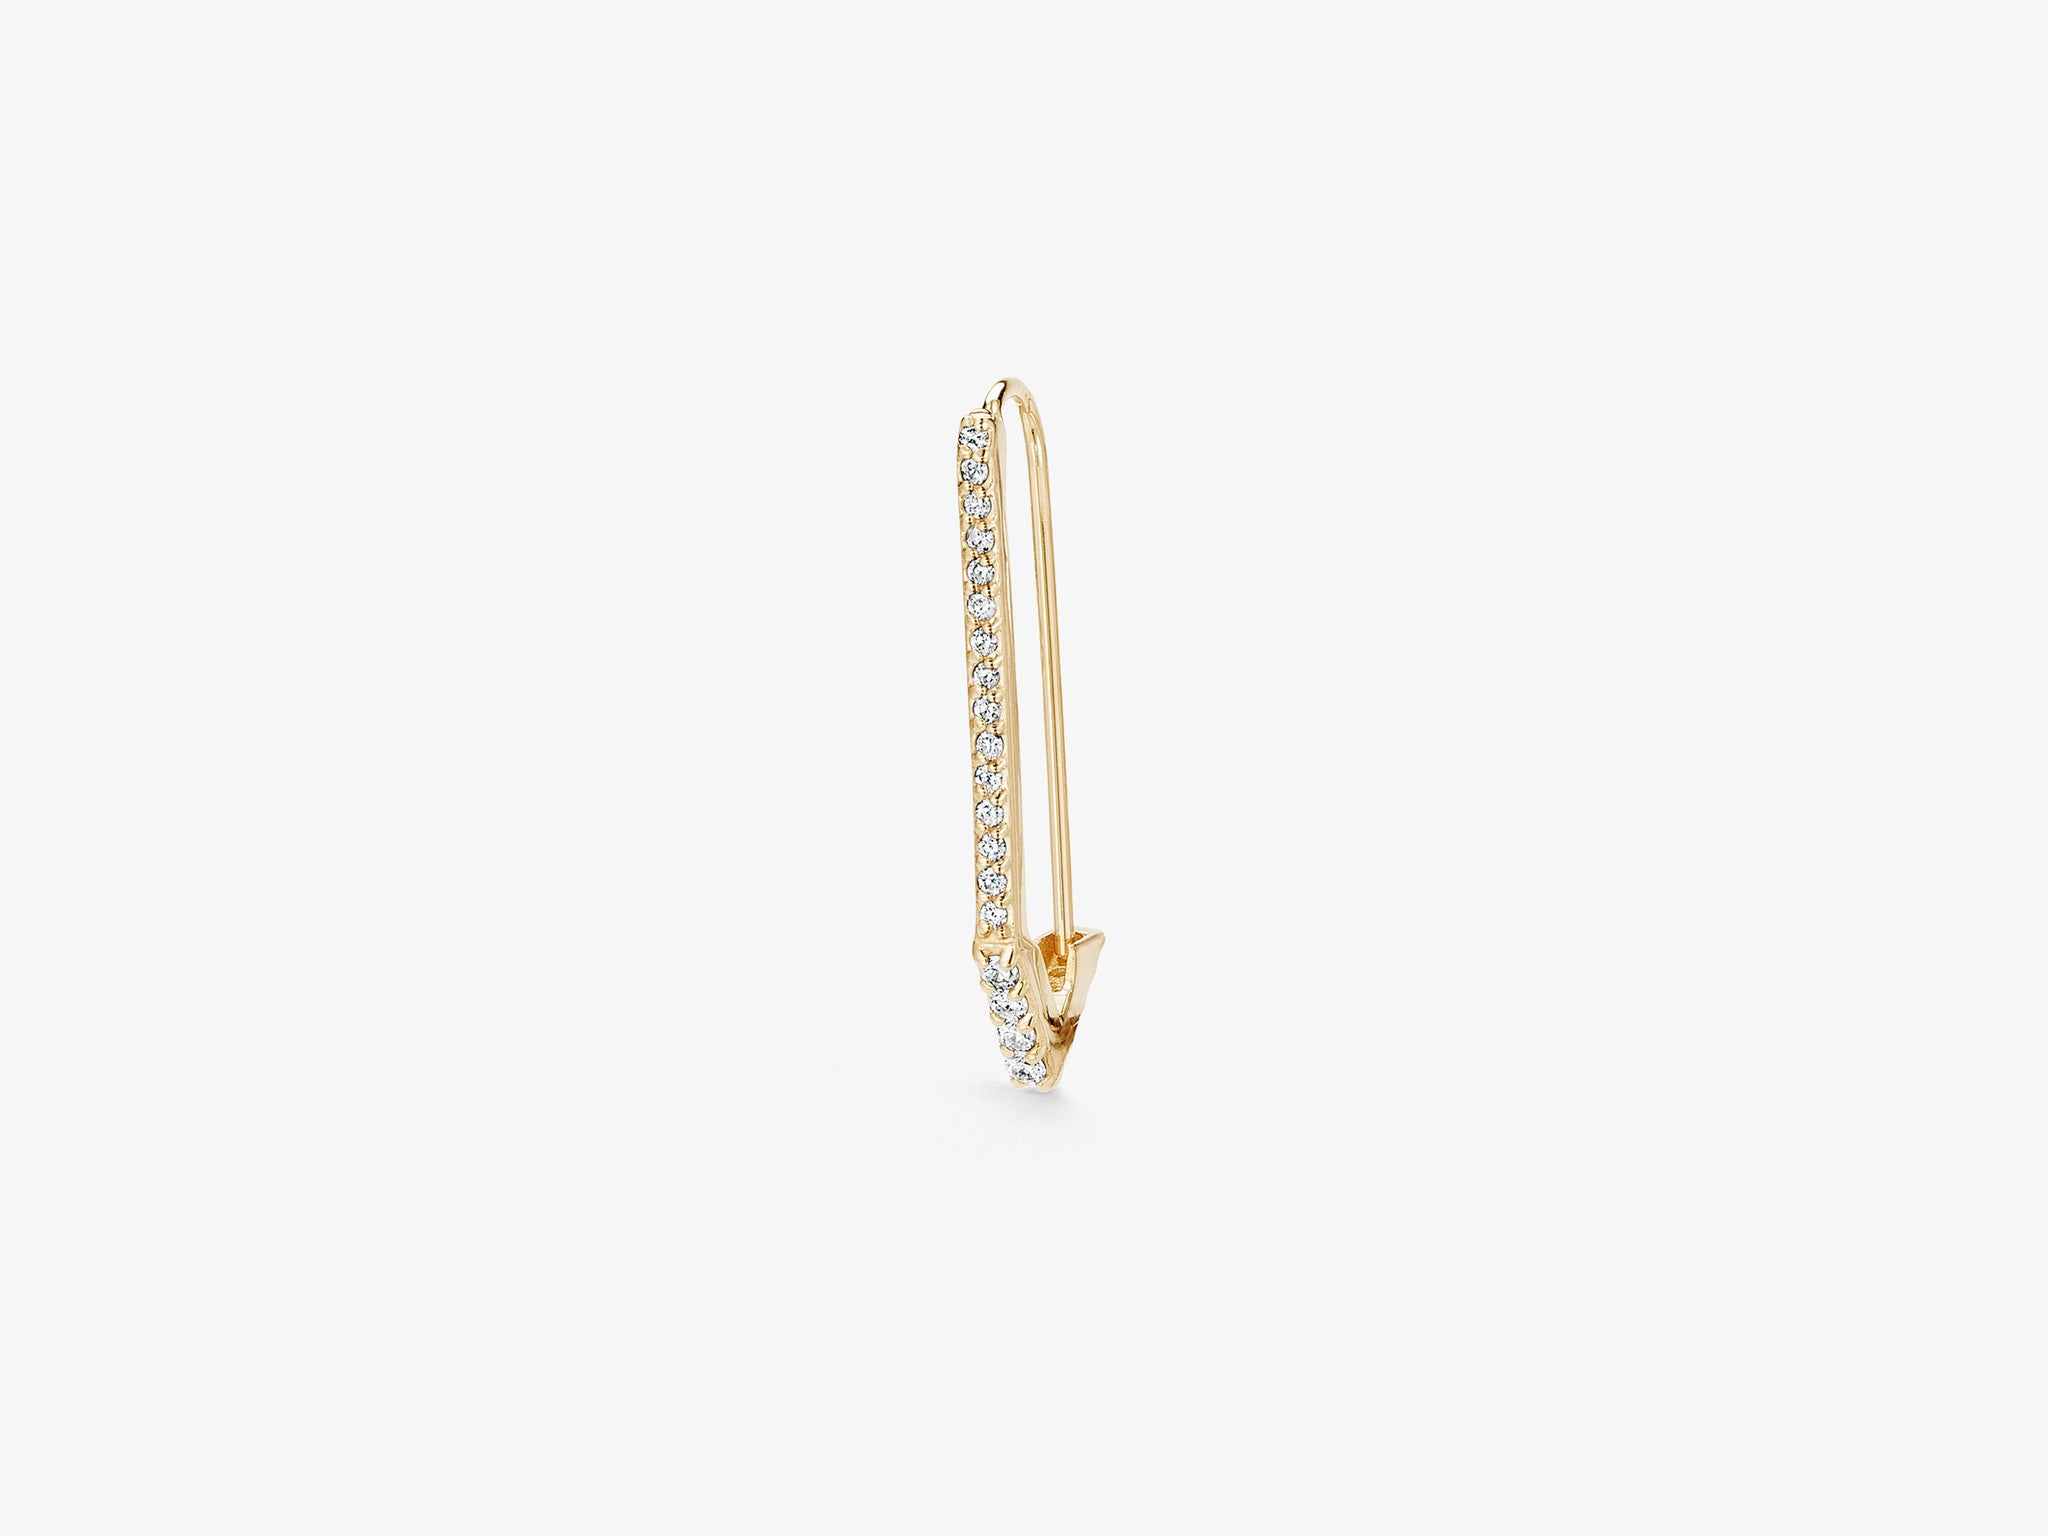 Small Single Safety Pin Earring with Triangle